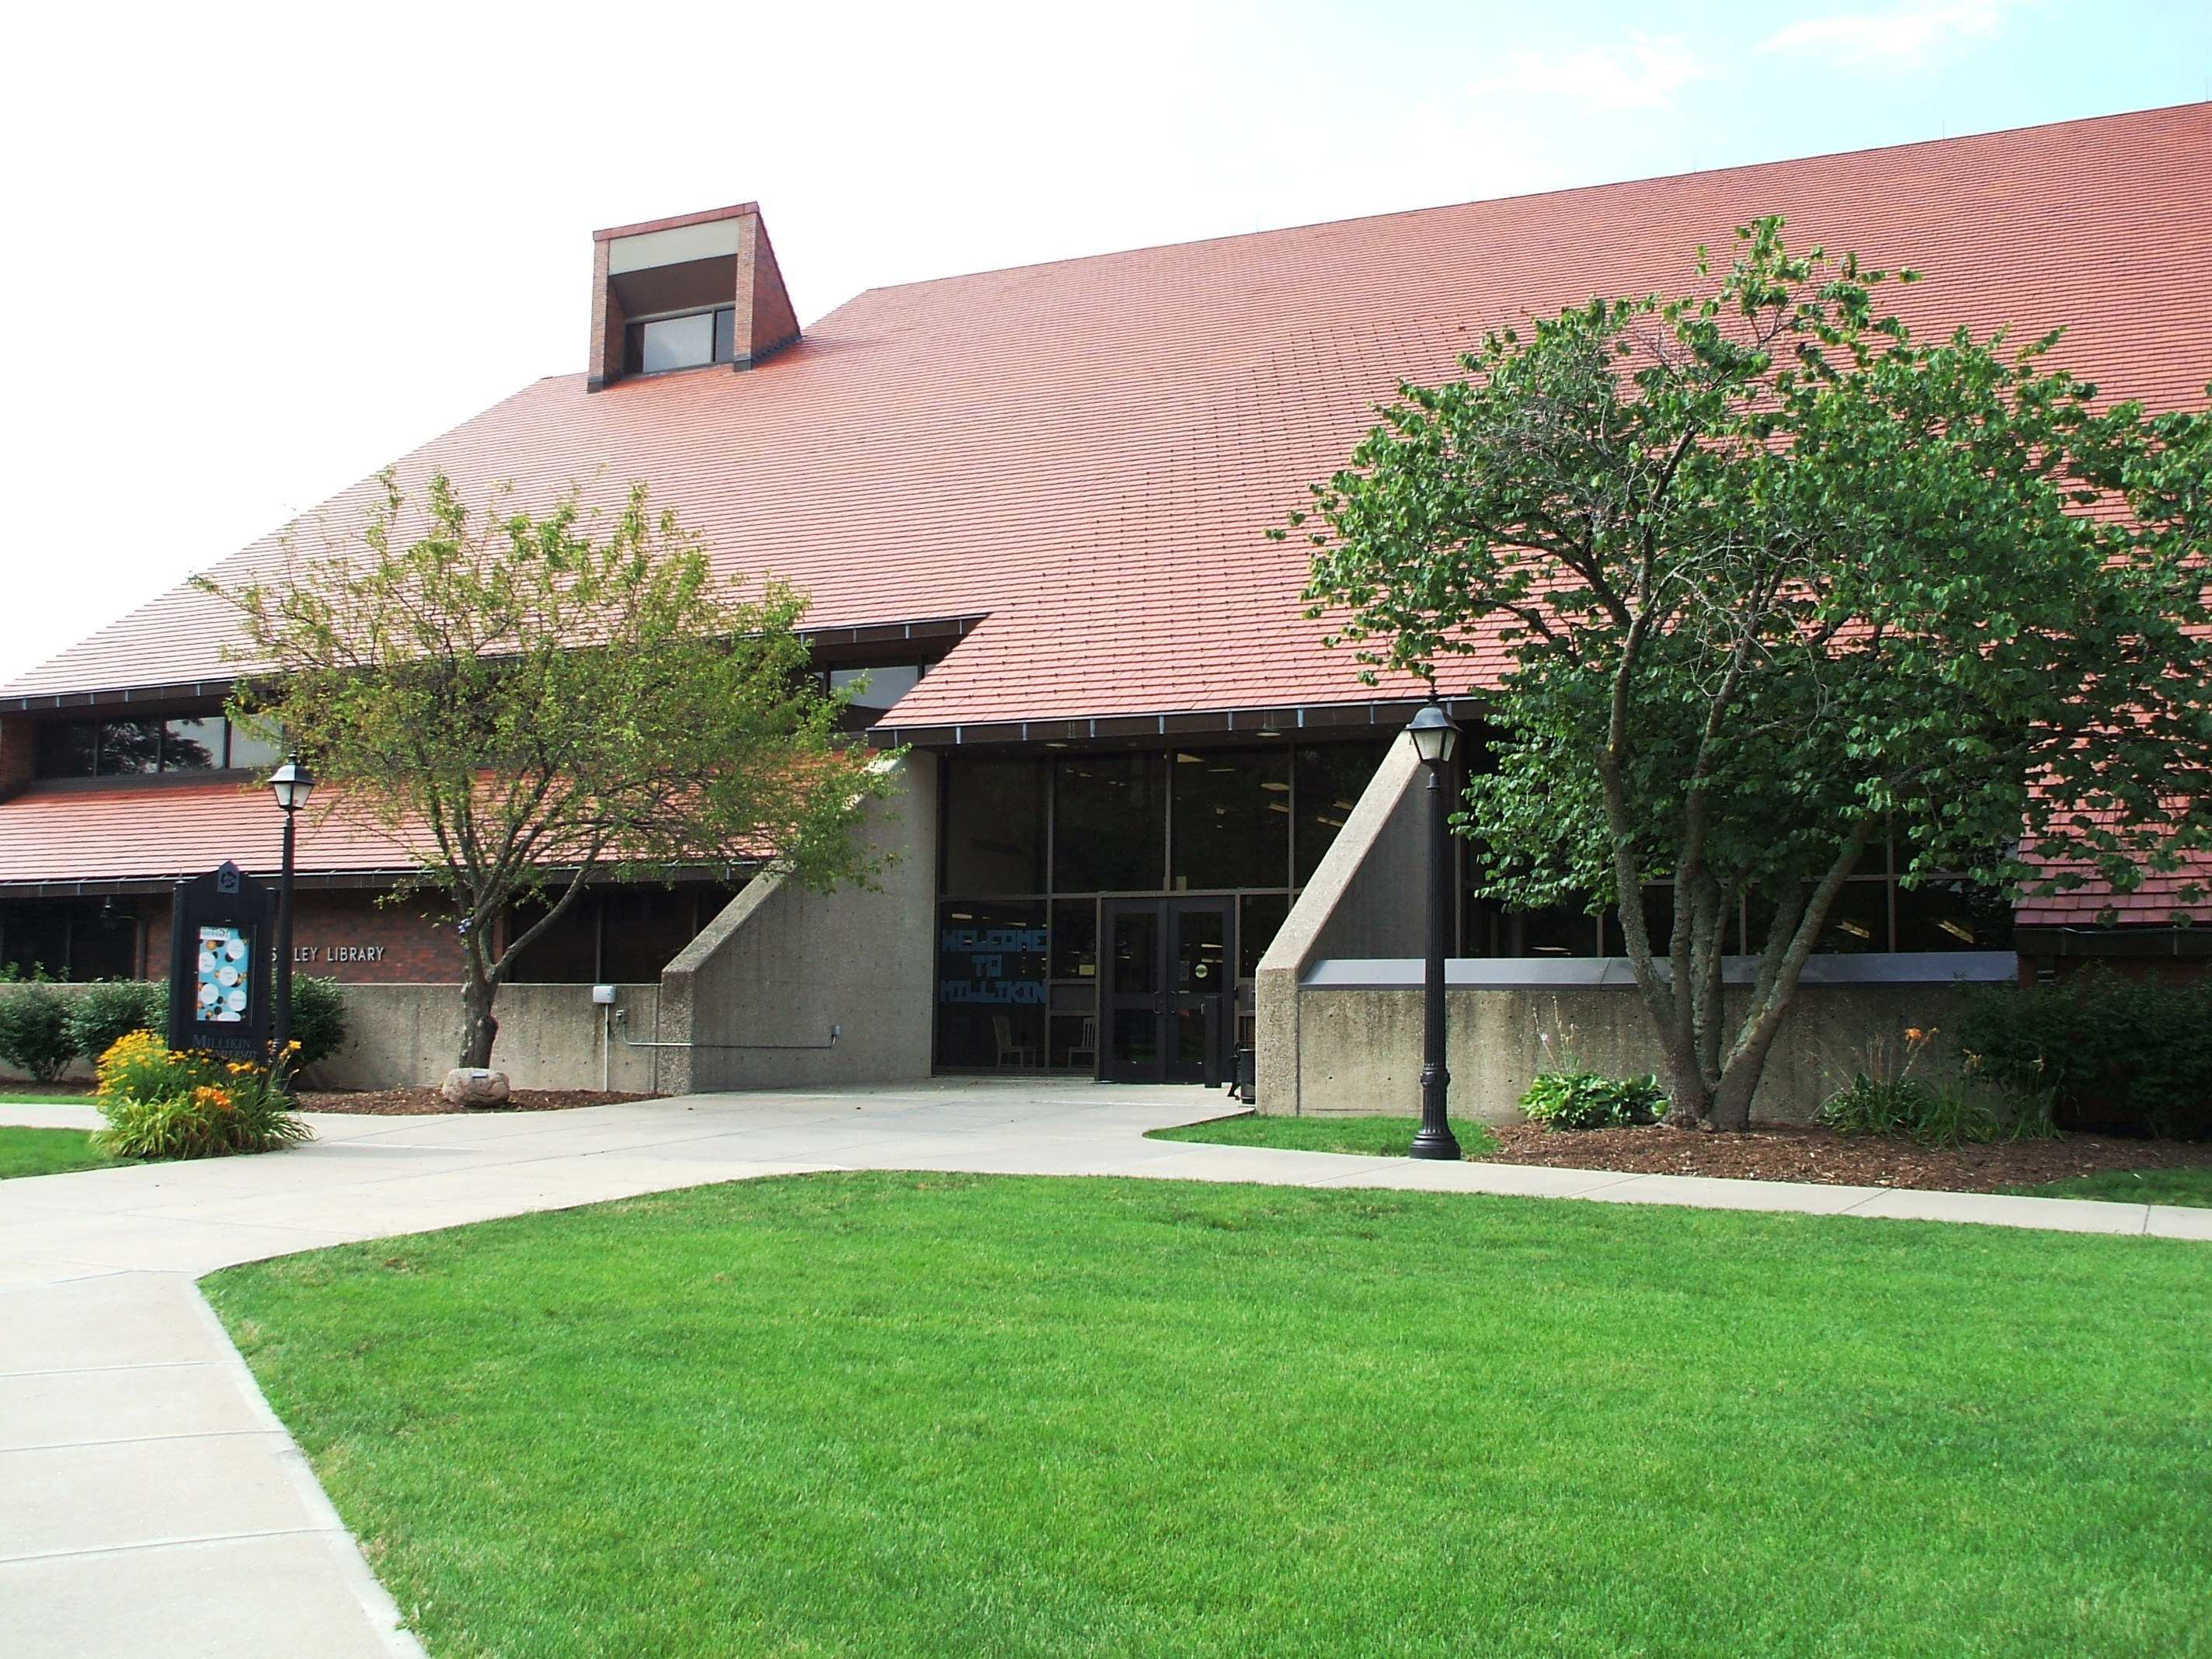 Picture of the exterior of Staley Library